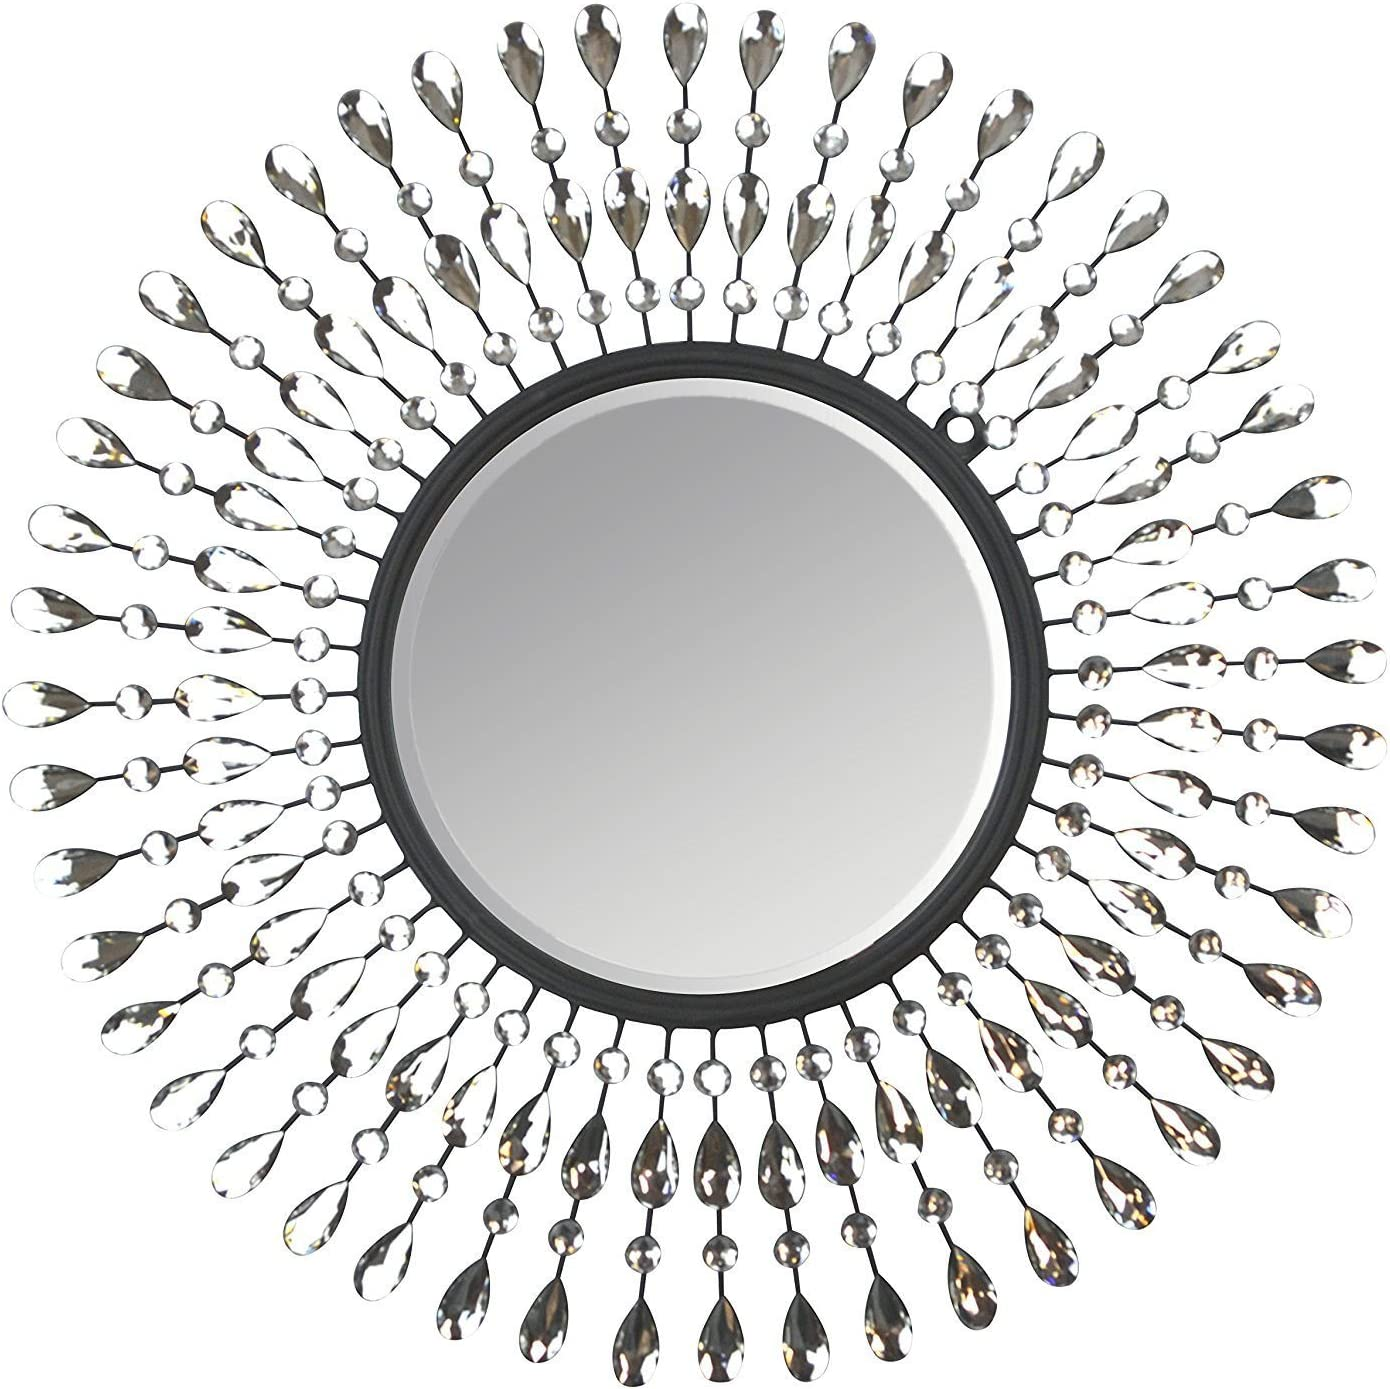 "Lulu Decor, Pearl Drop Wall Mirror, Metal Wall Mirror, Frame Size 25"", Perfect for Housewarming Gift"